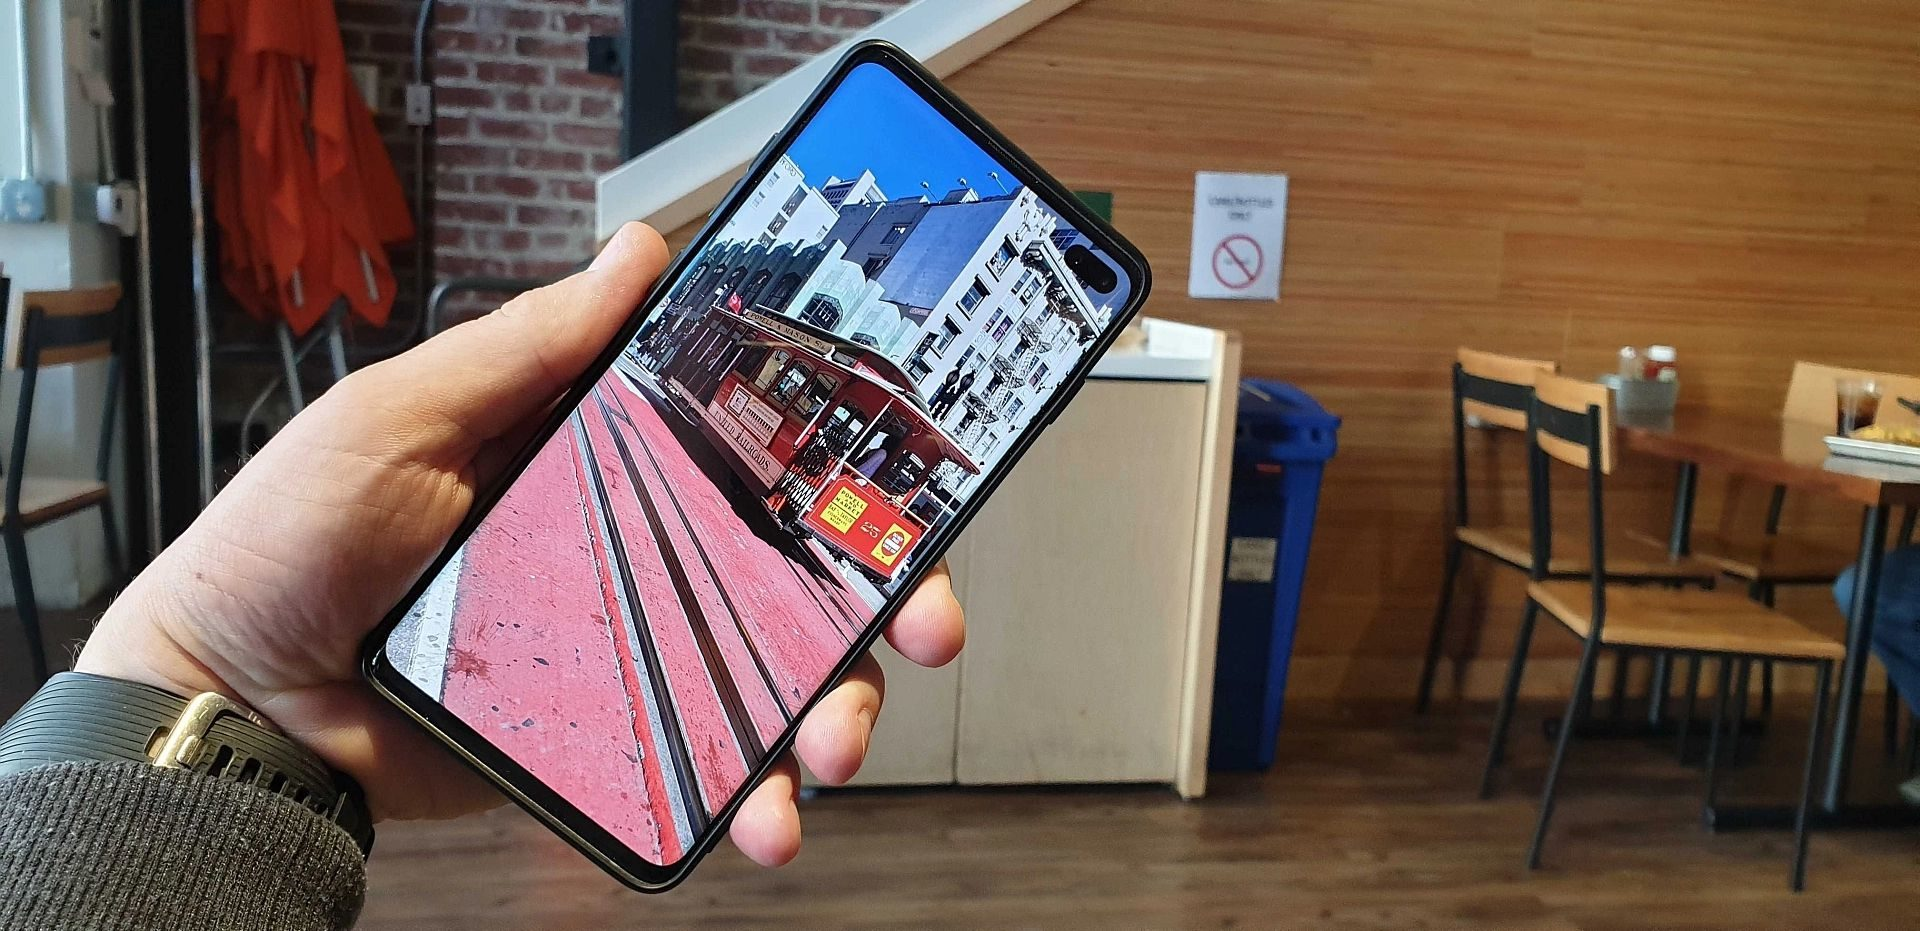 【S10/S9/S8/Note8/Note9対応】「Galaxy」スマホのディスプレイ解像度を変更する方法